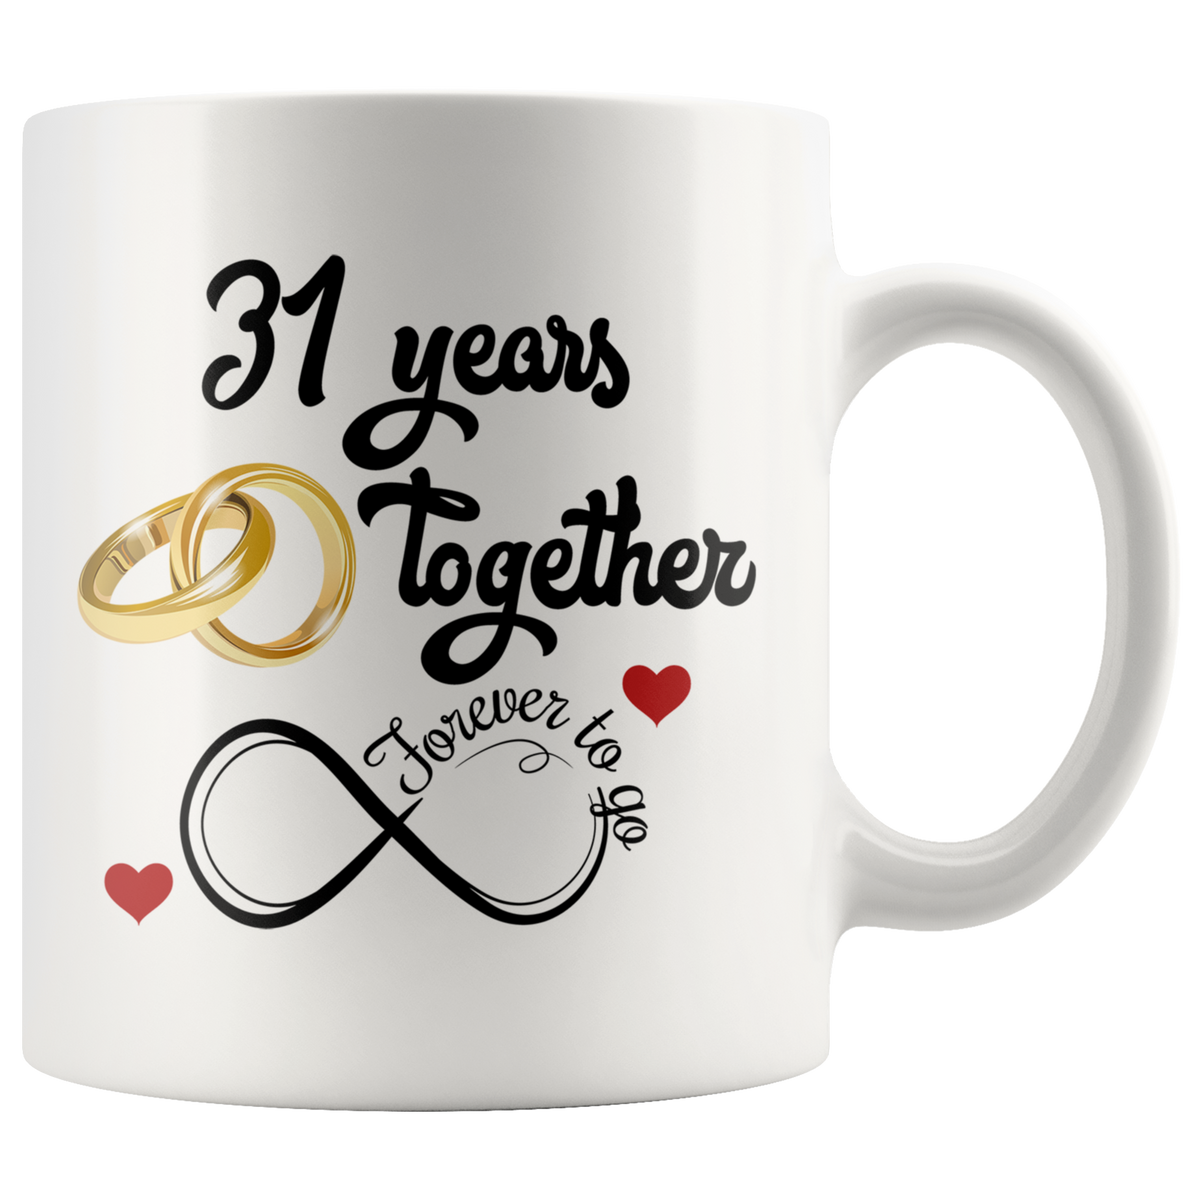 3 Wedding Anniversary Gift: 31st Wedding Anniversary Gift For Him And Her, Married For